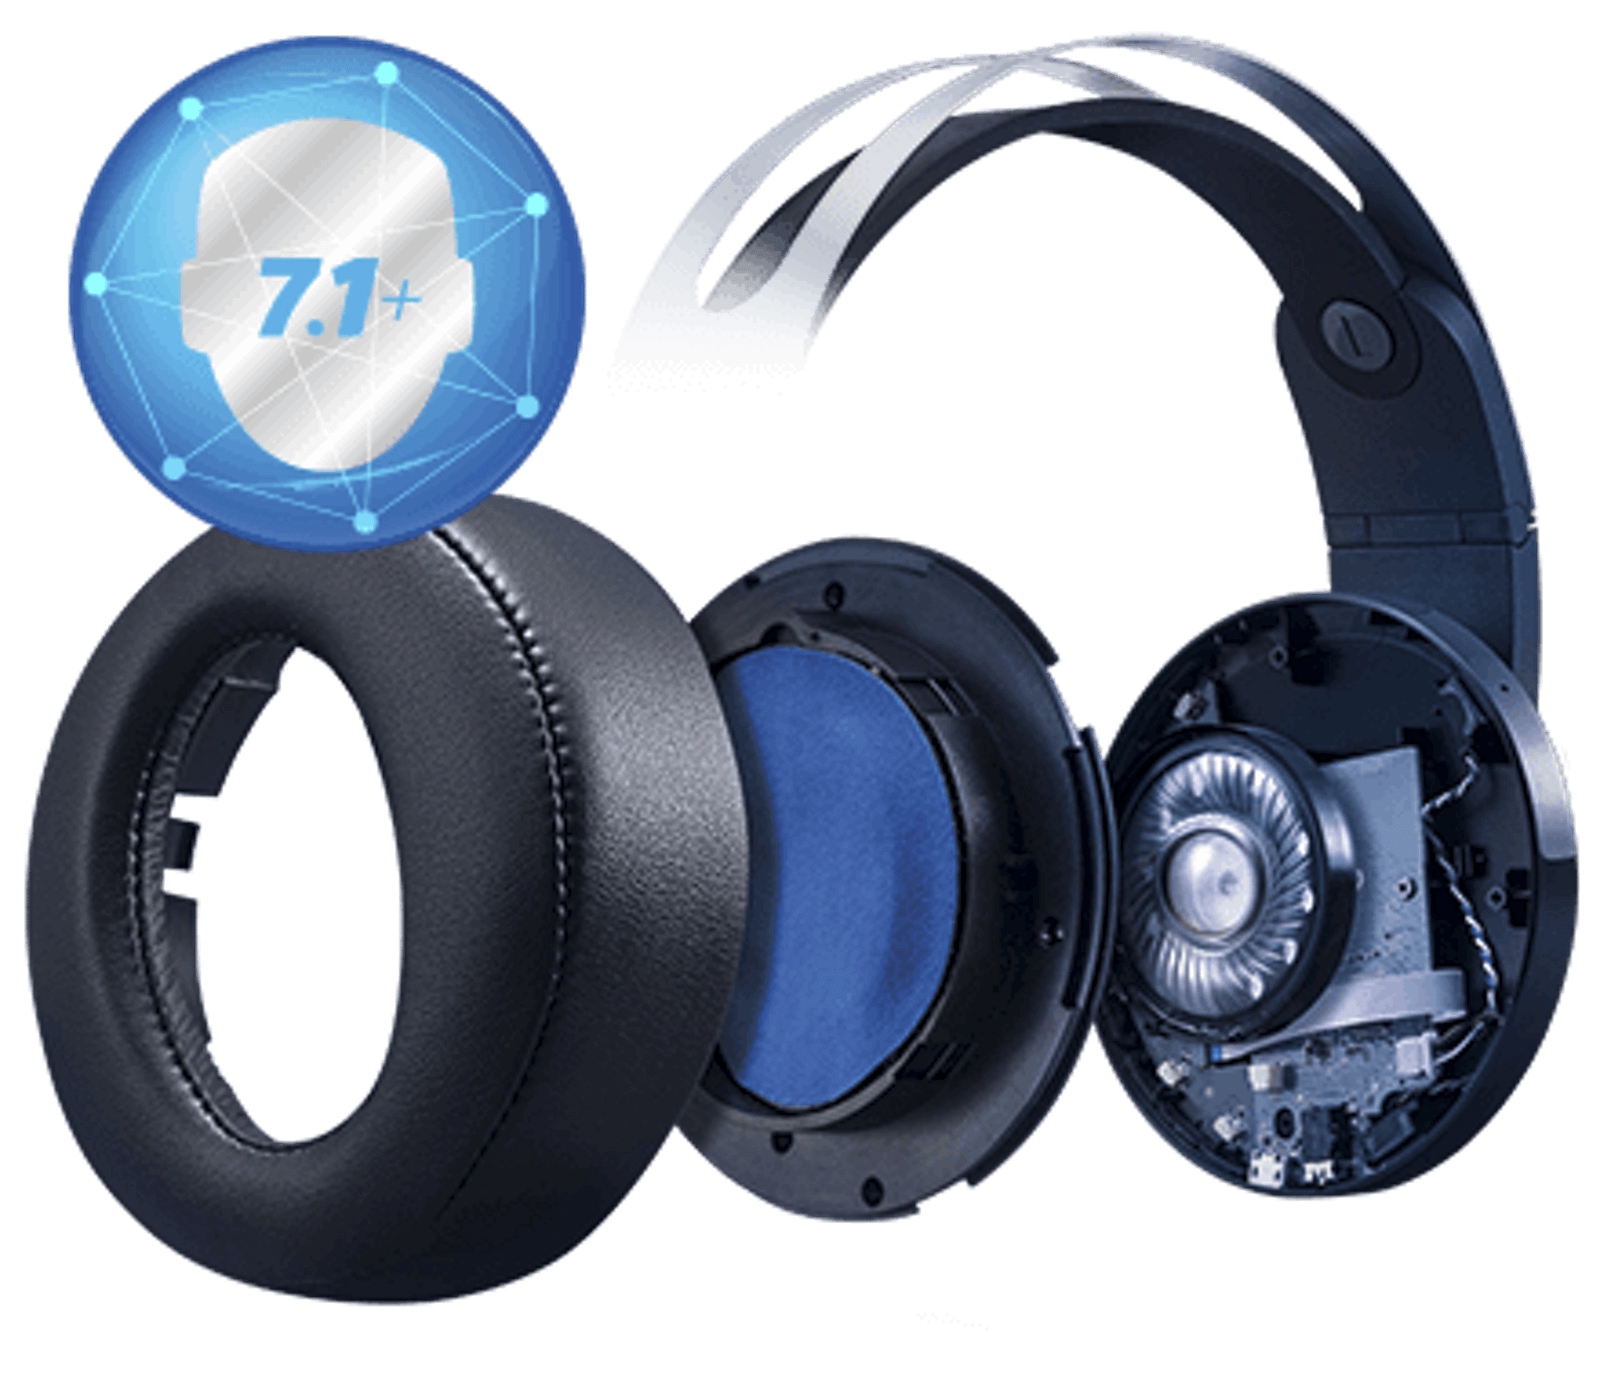 Sony ps4 headset with 7.1 virtual surround sound